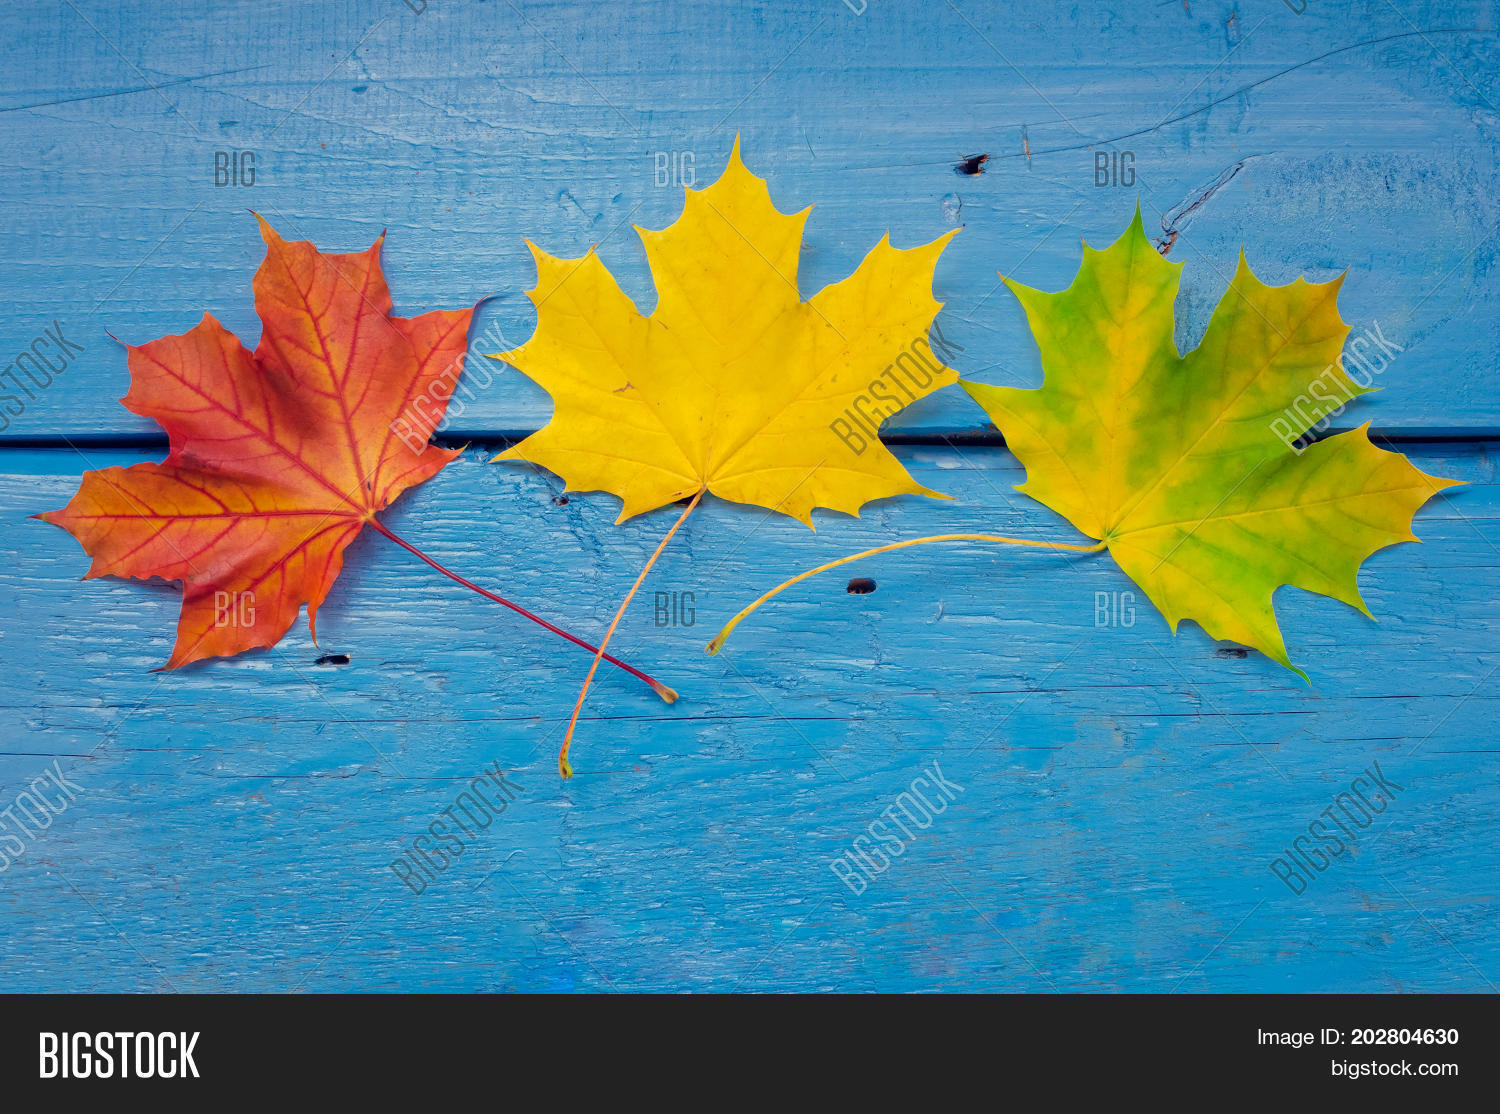 Autumn Leaf Life Cycle Image Amp Photo Free Trial